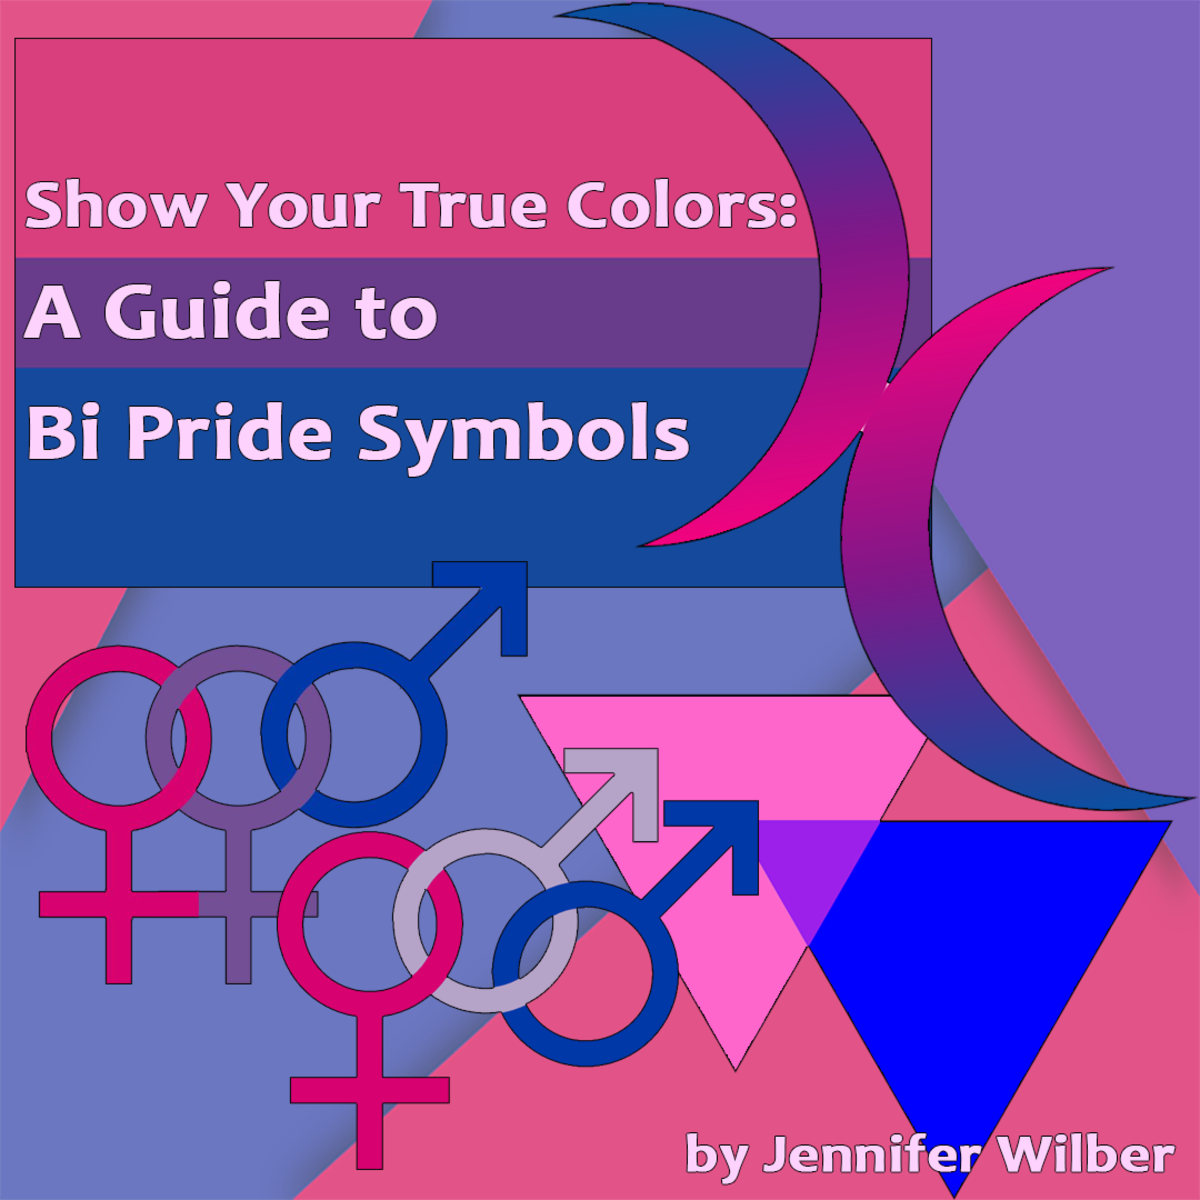 Show Your True Colors: A Guide to Bi Pride Symbols